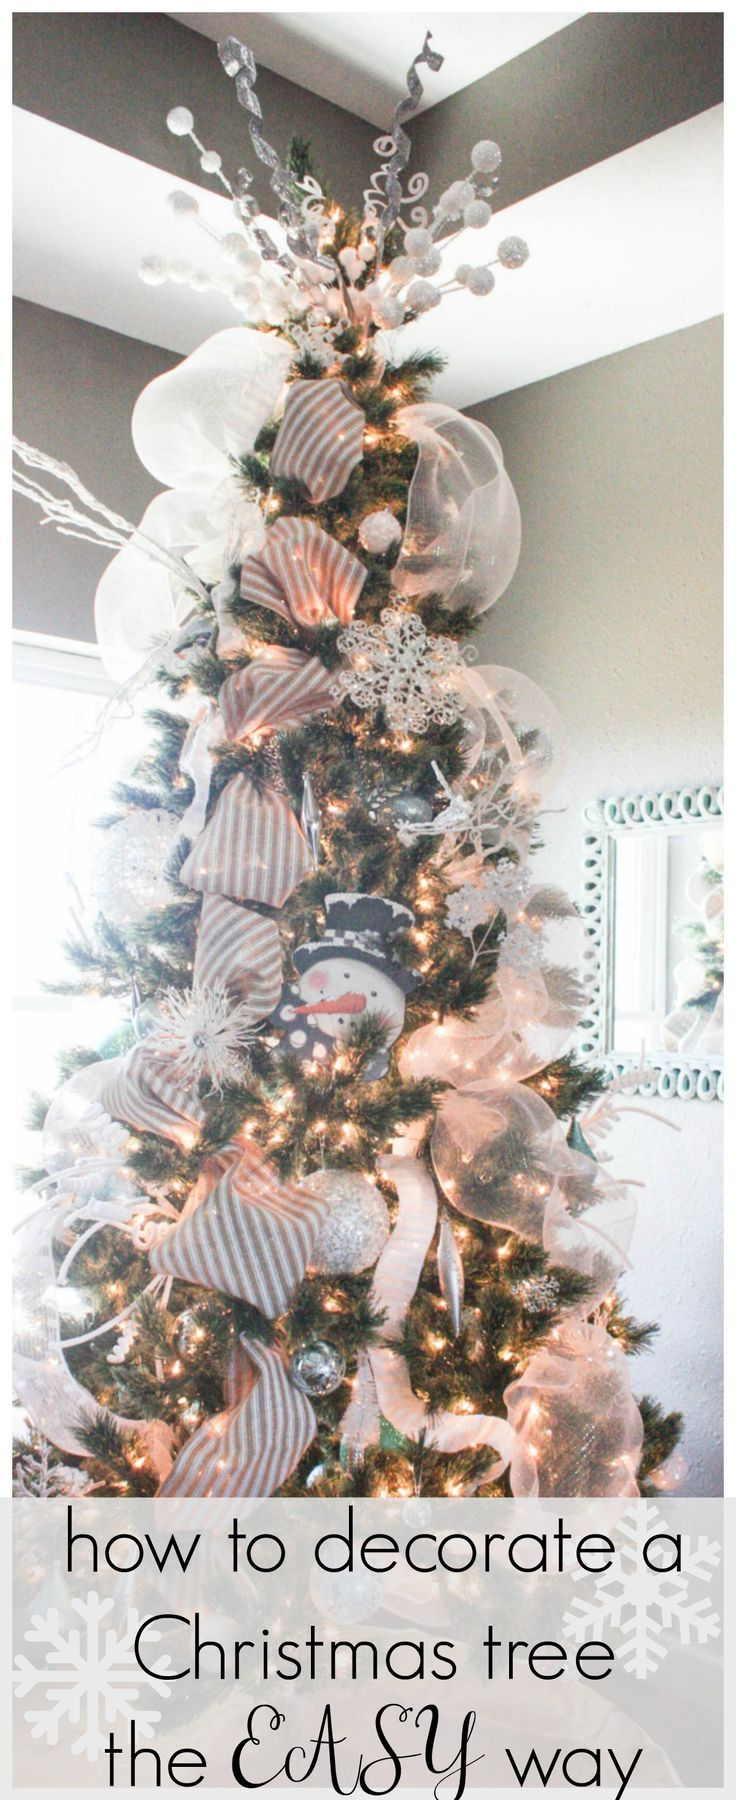 how to decorate a christmas tree from start to finish the easy way christmas pinterest christmas christmas decorations and christmas tree